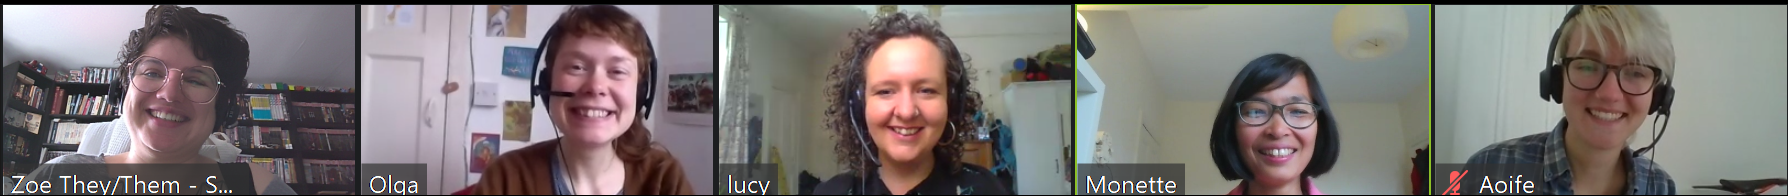 Screenshot of a zoom meeting of five people smiling